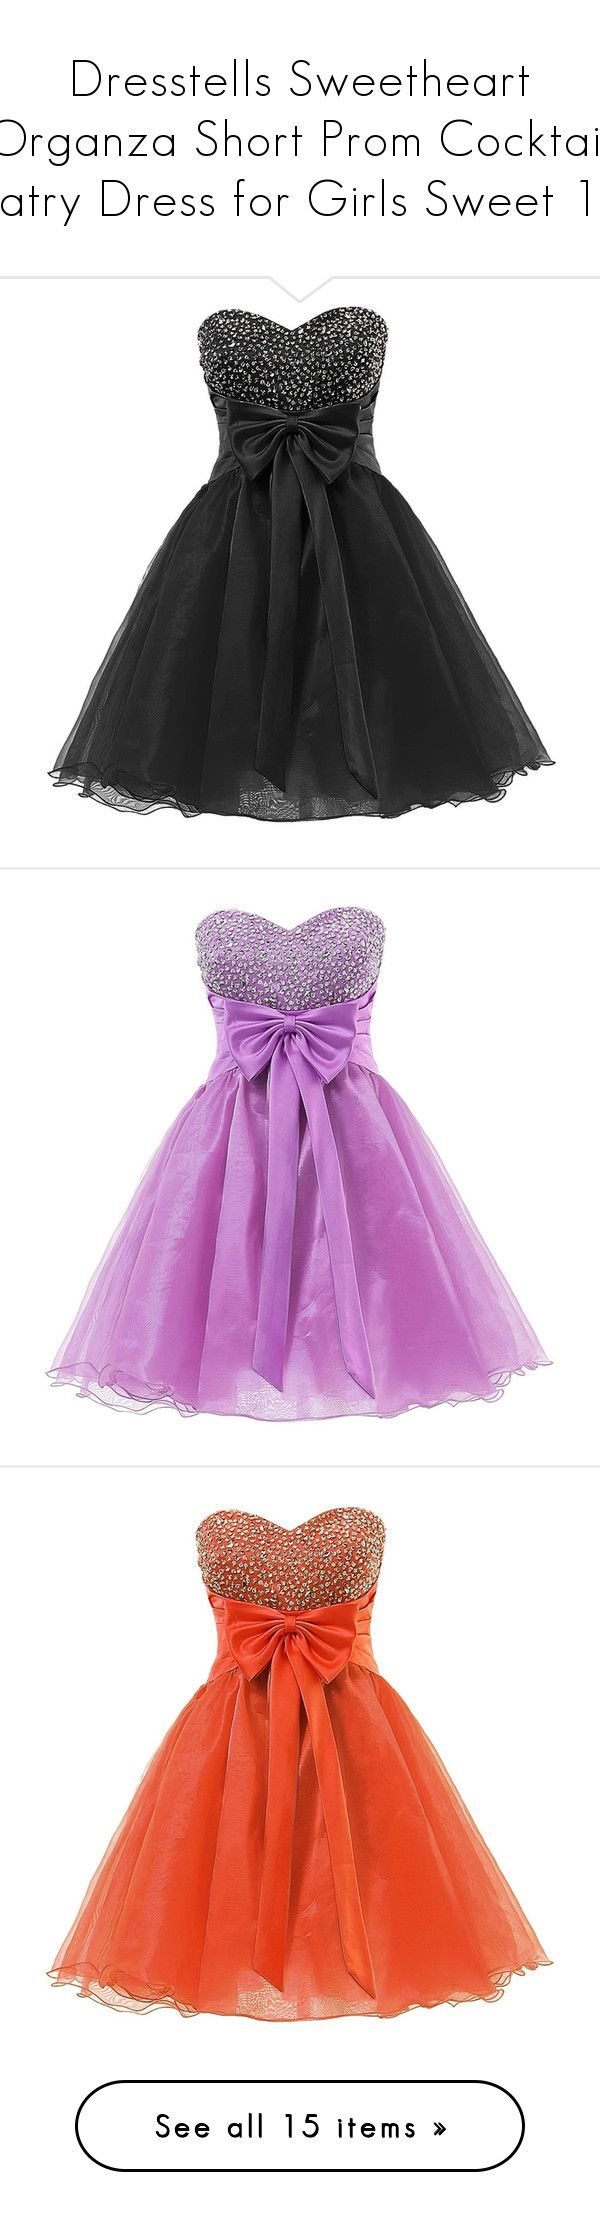 """""""Dresstells Sweetheart Organza Short Prom Cocktail Patry Dress for Girls Sweet 16"""" by sweetie-hart ❤ liked on Polyvore featuring dresses, short dresses, black, cocktail homecoming dresses, holiday dresses, sweetheart cocktail dresses, cocktail prom dress, prom dresses, purple and evening cocktail dresses"""